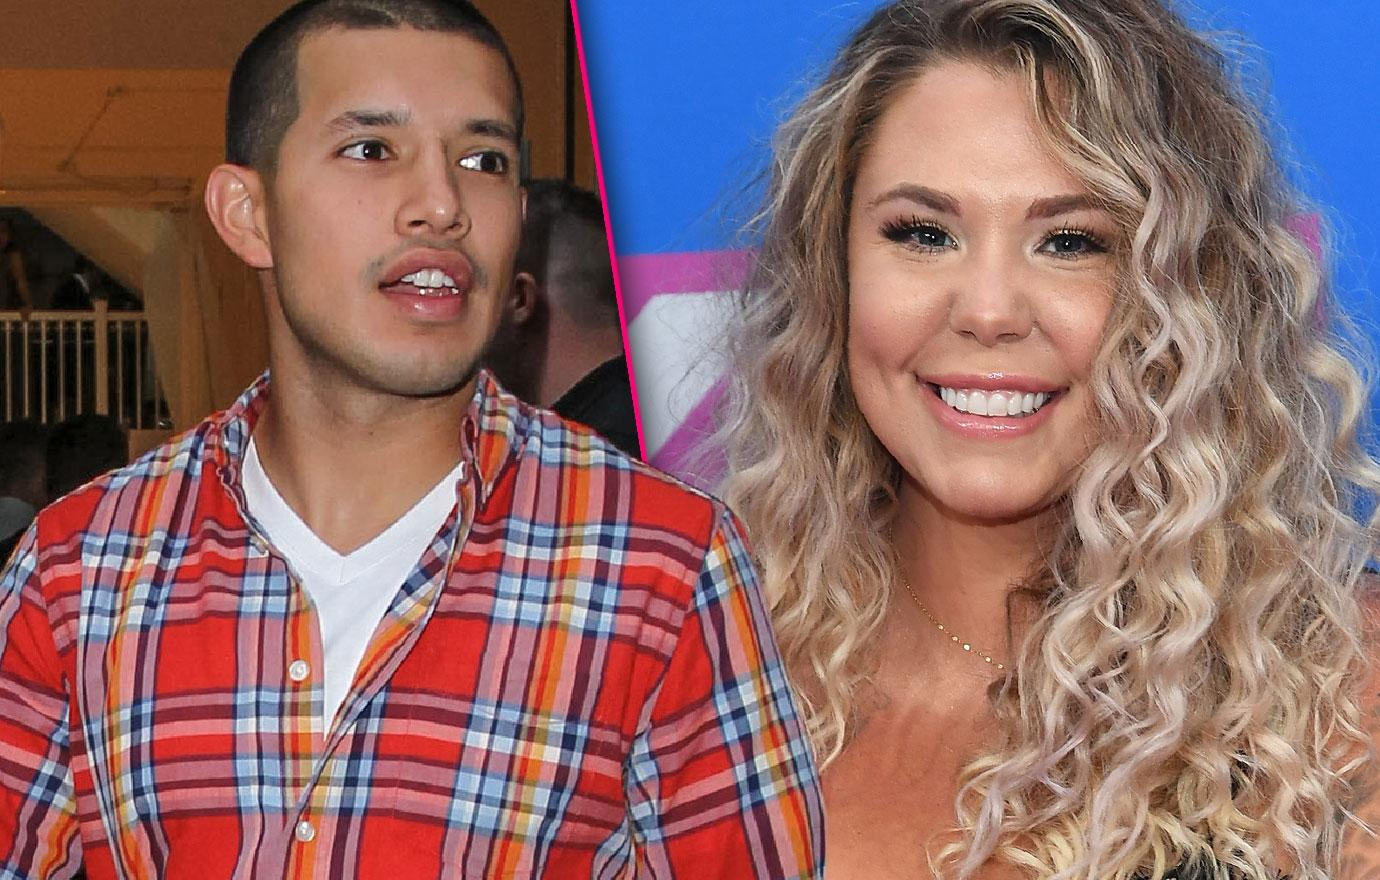 Teen Mom Javi Marroquin Blasts Ex Kailyn Lowry Over Book